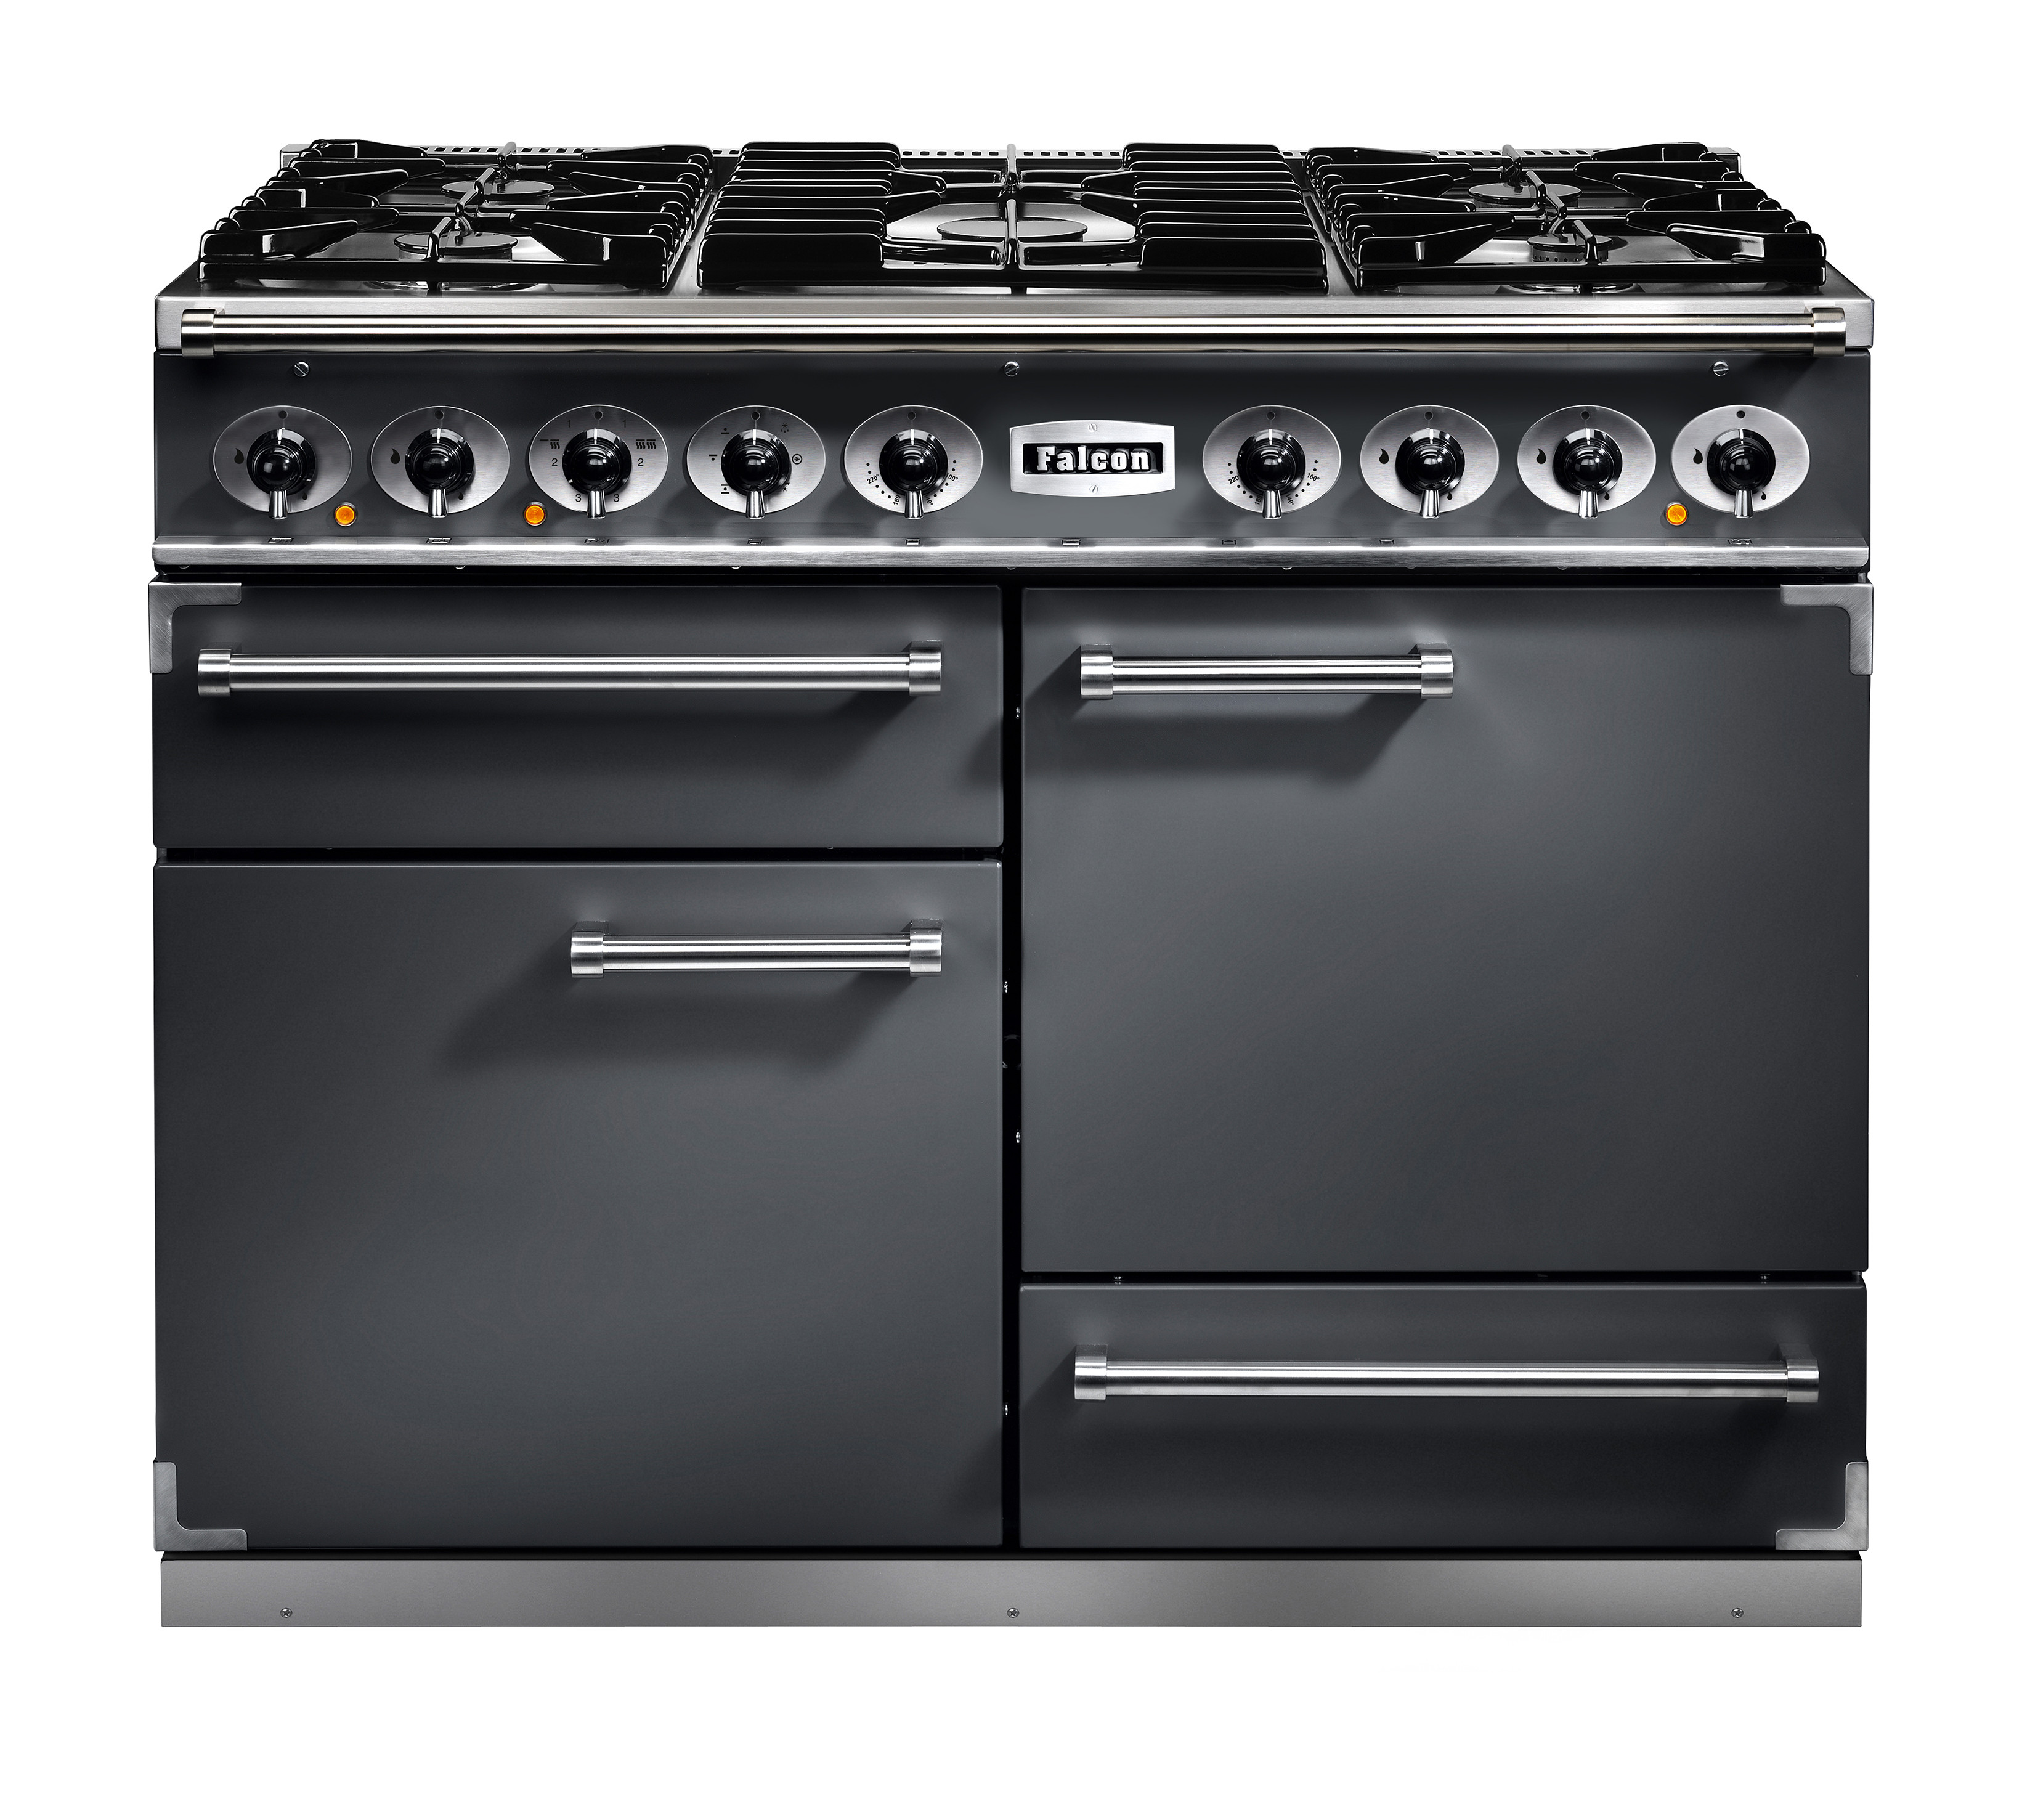 Falcon 1092 Deluxe Dual Fuel Slate/ChromeRange Cooker with Matt Pan Supports